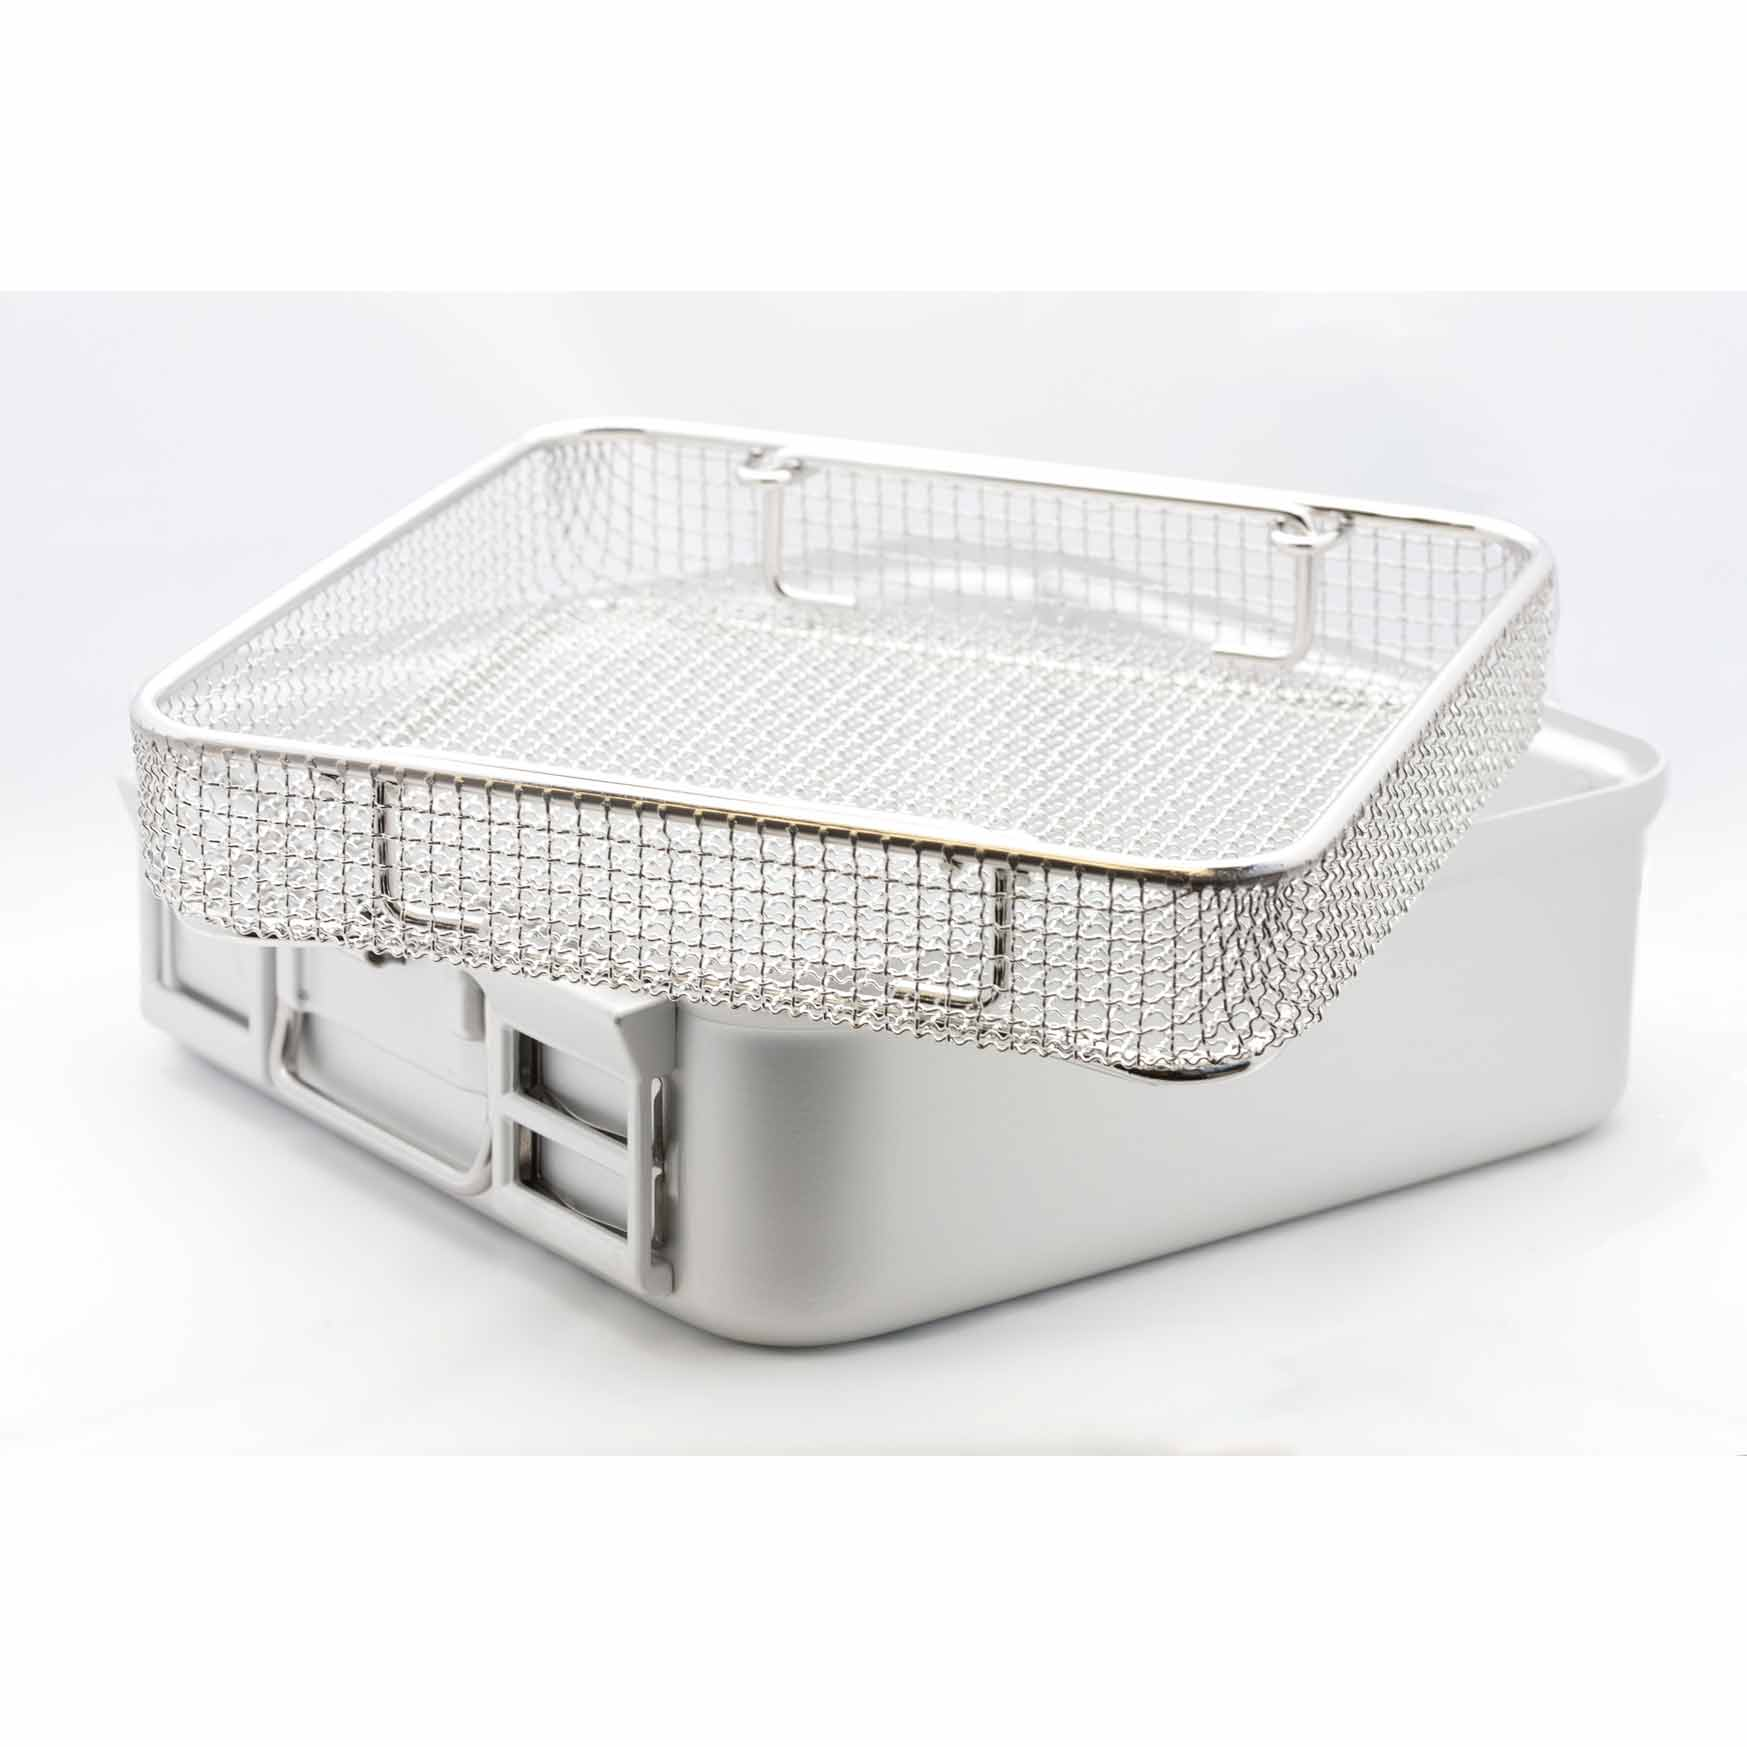 Metal Sterilization Trays - surgicalinstruments .com